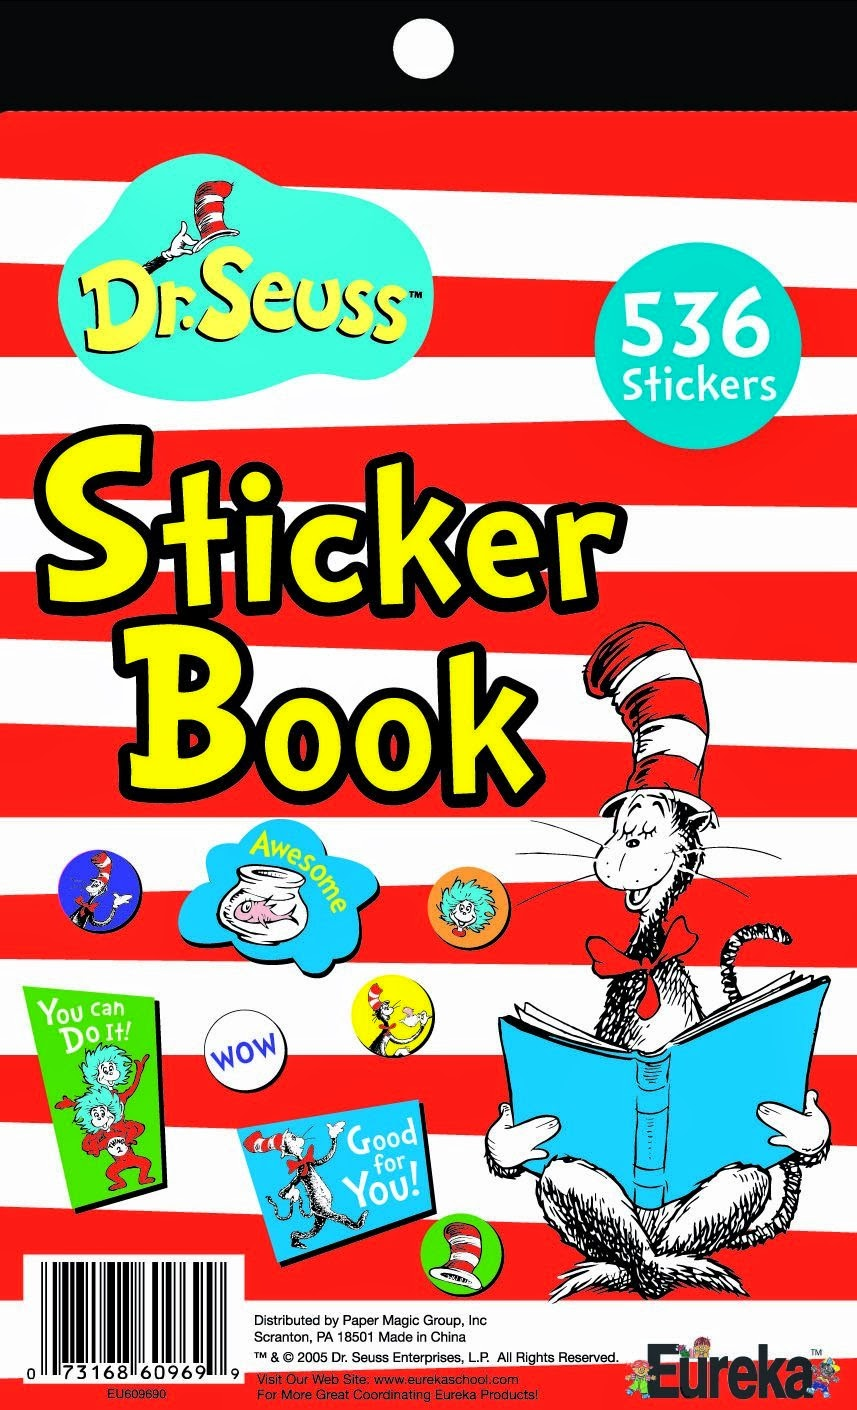 Dr. Seuss Cat in the Hat Stickers for Kids